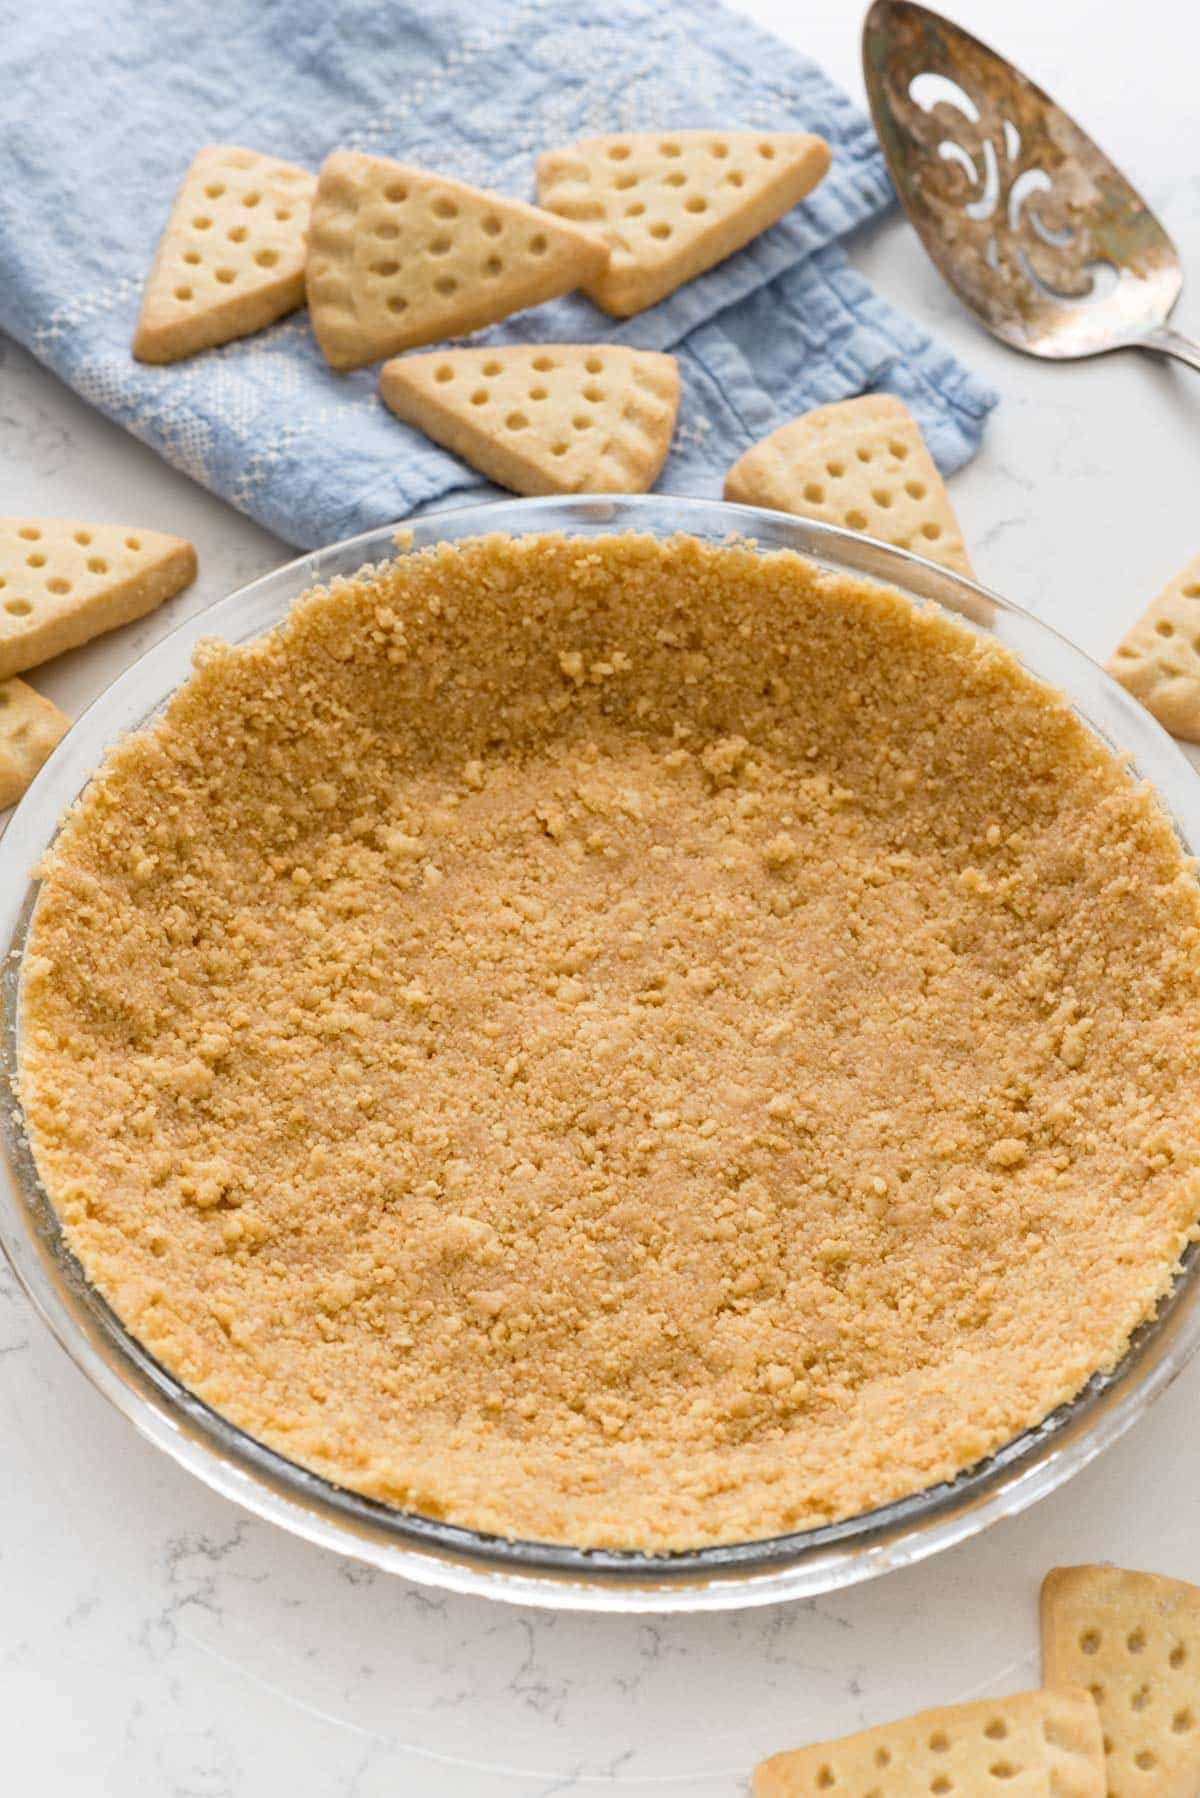 The BEST Shortbread Crust Recipe - this easy shortbread crust is made from shortbread cookies and is perfect for any no-bake pie recipe!